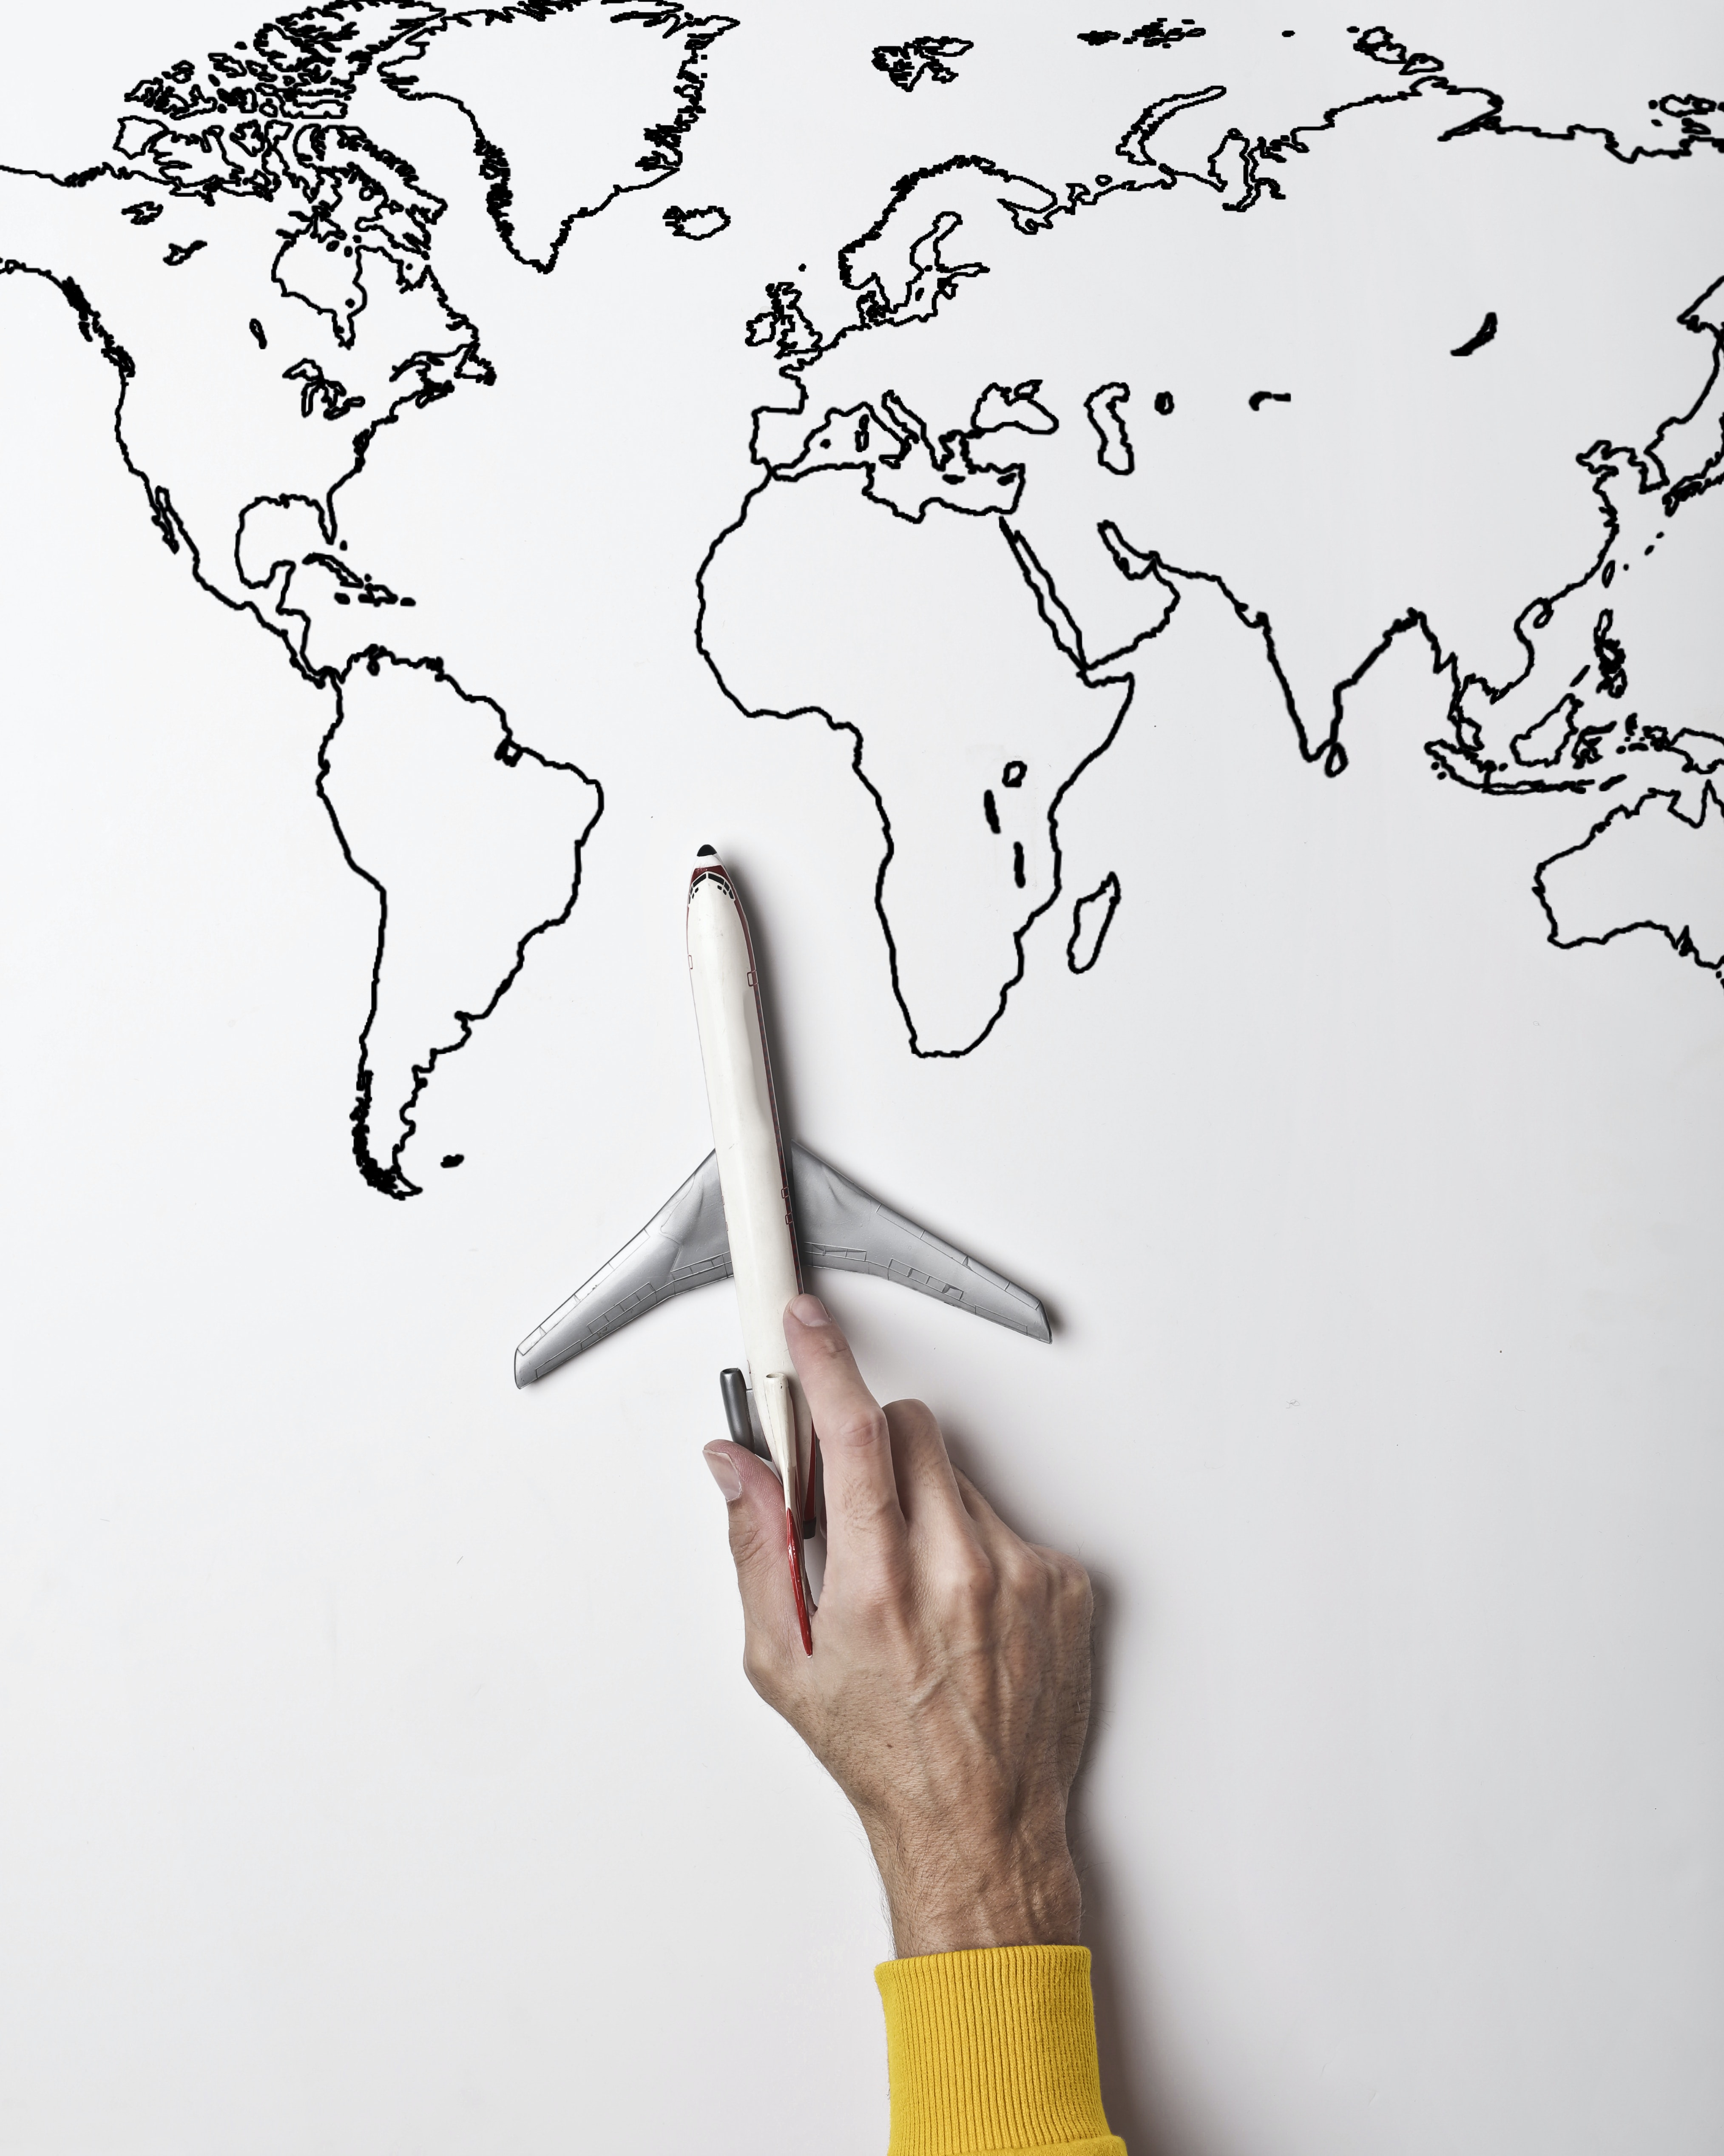 Top Tips To Take Onboard When Your Business Reaches International Markets